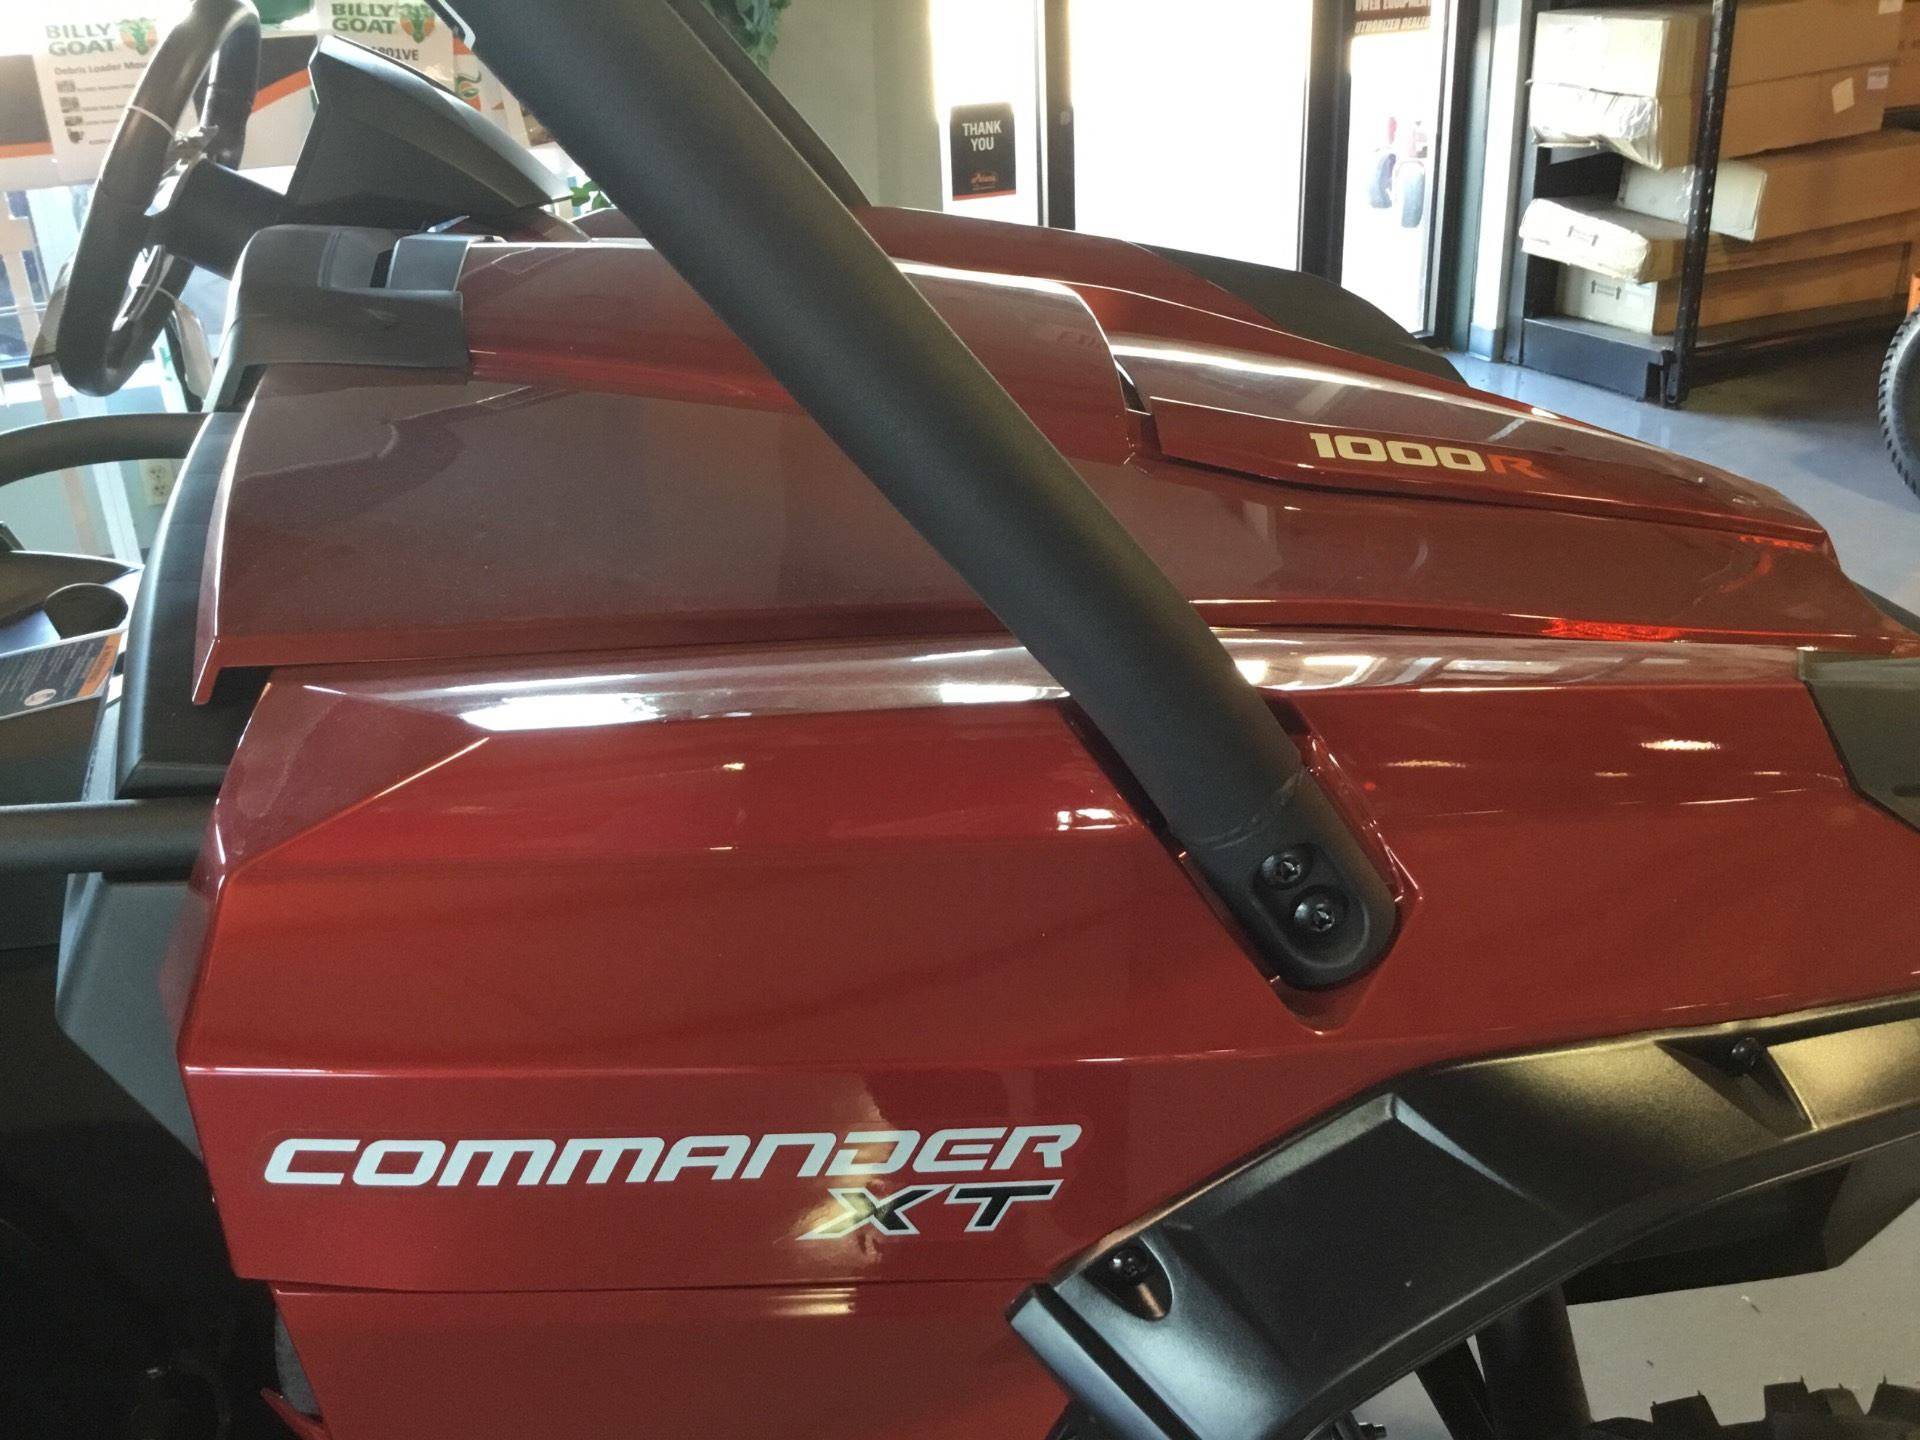 New CanAm COMMANDER XT Utility Vehicles In Bowling Green - Bowling green ky car show 2018